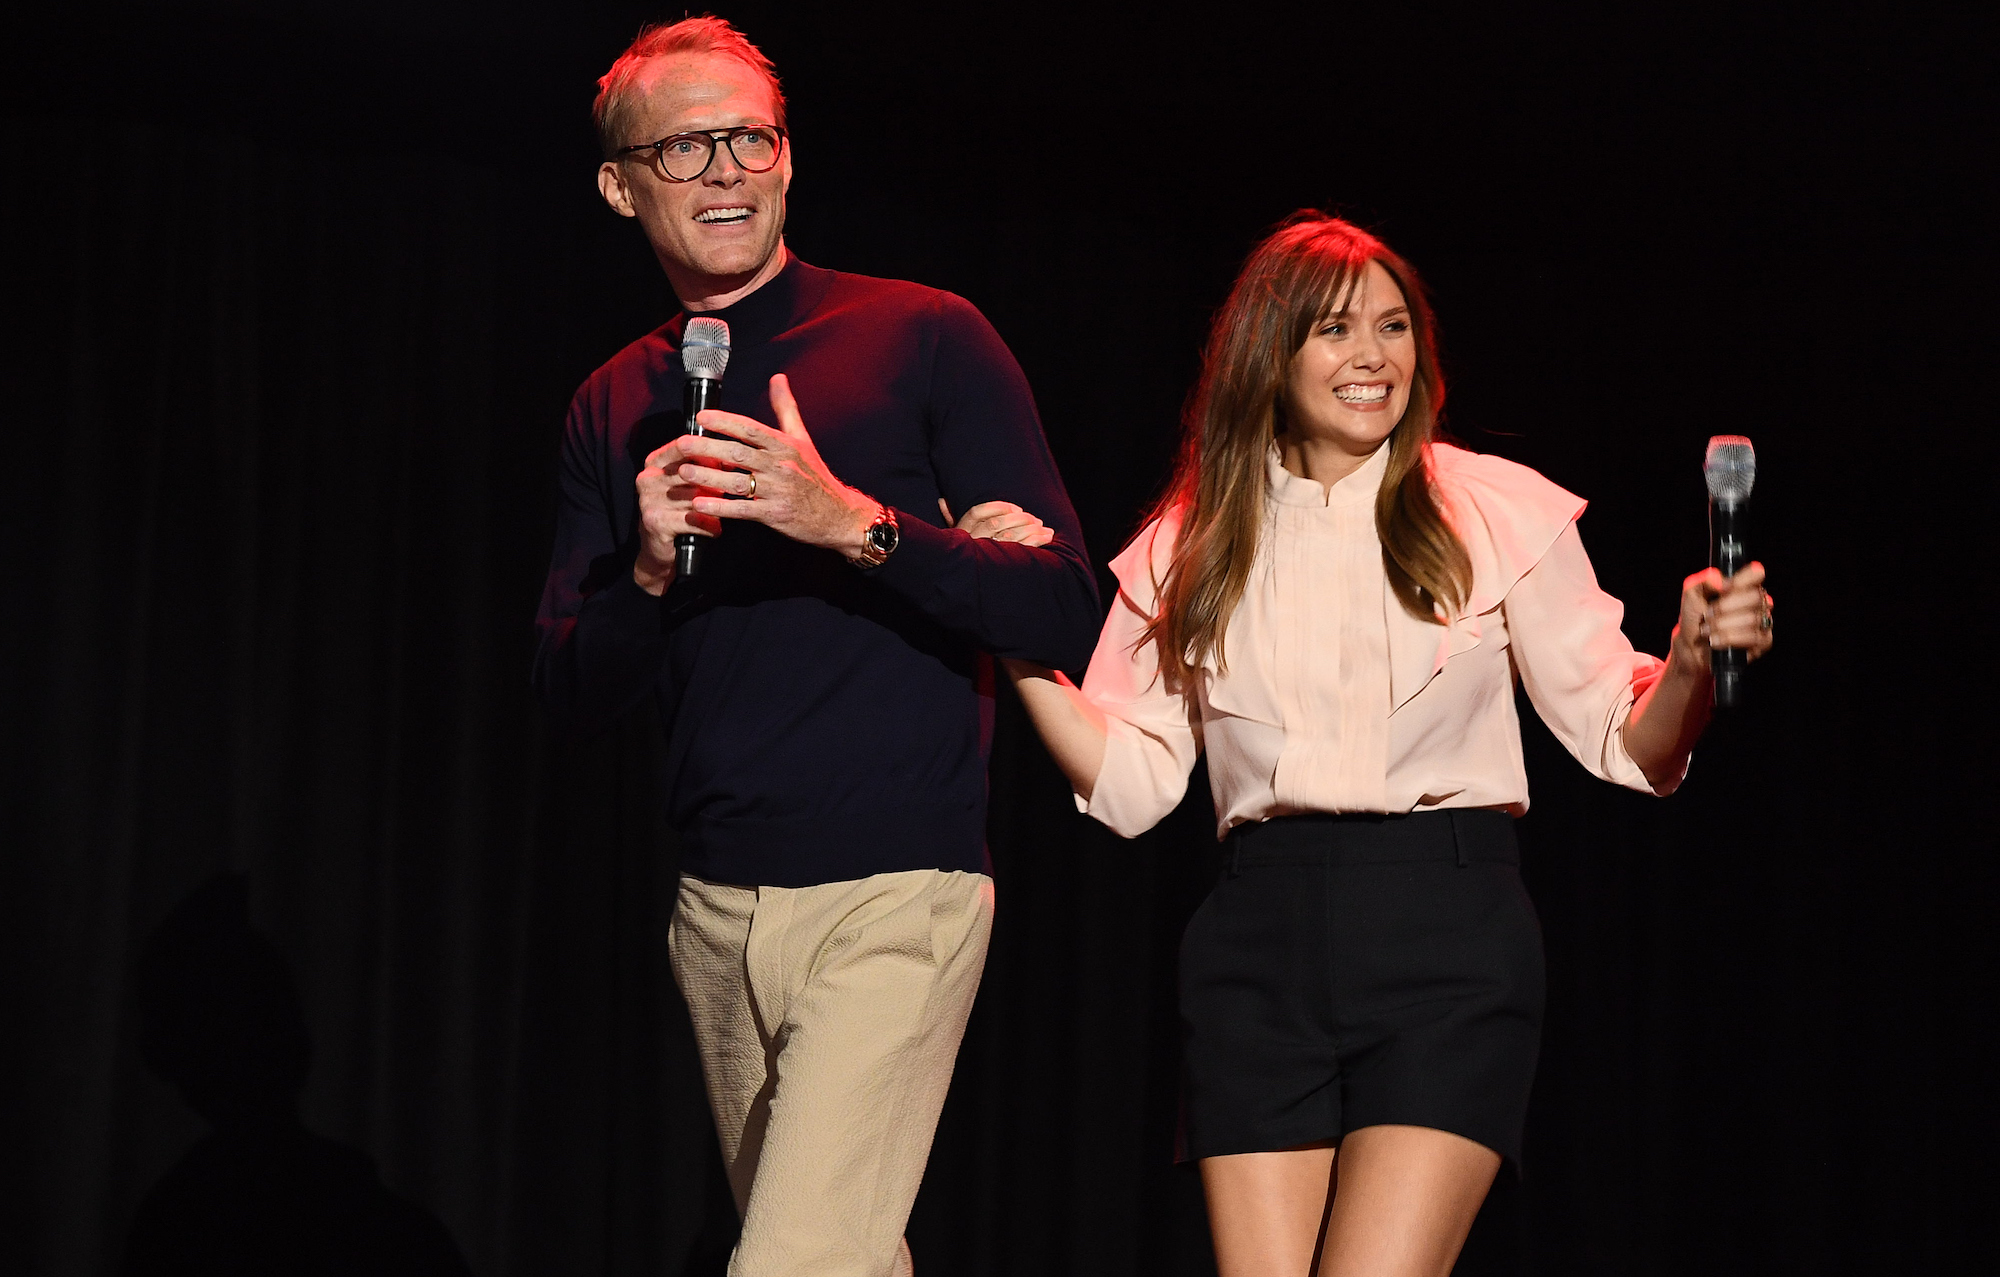 Paul Bettany and Elizabeth Olsen at the D23 EXPO 2019